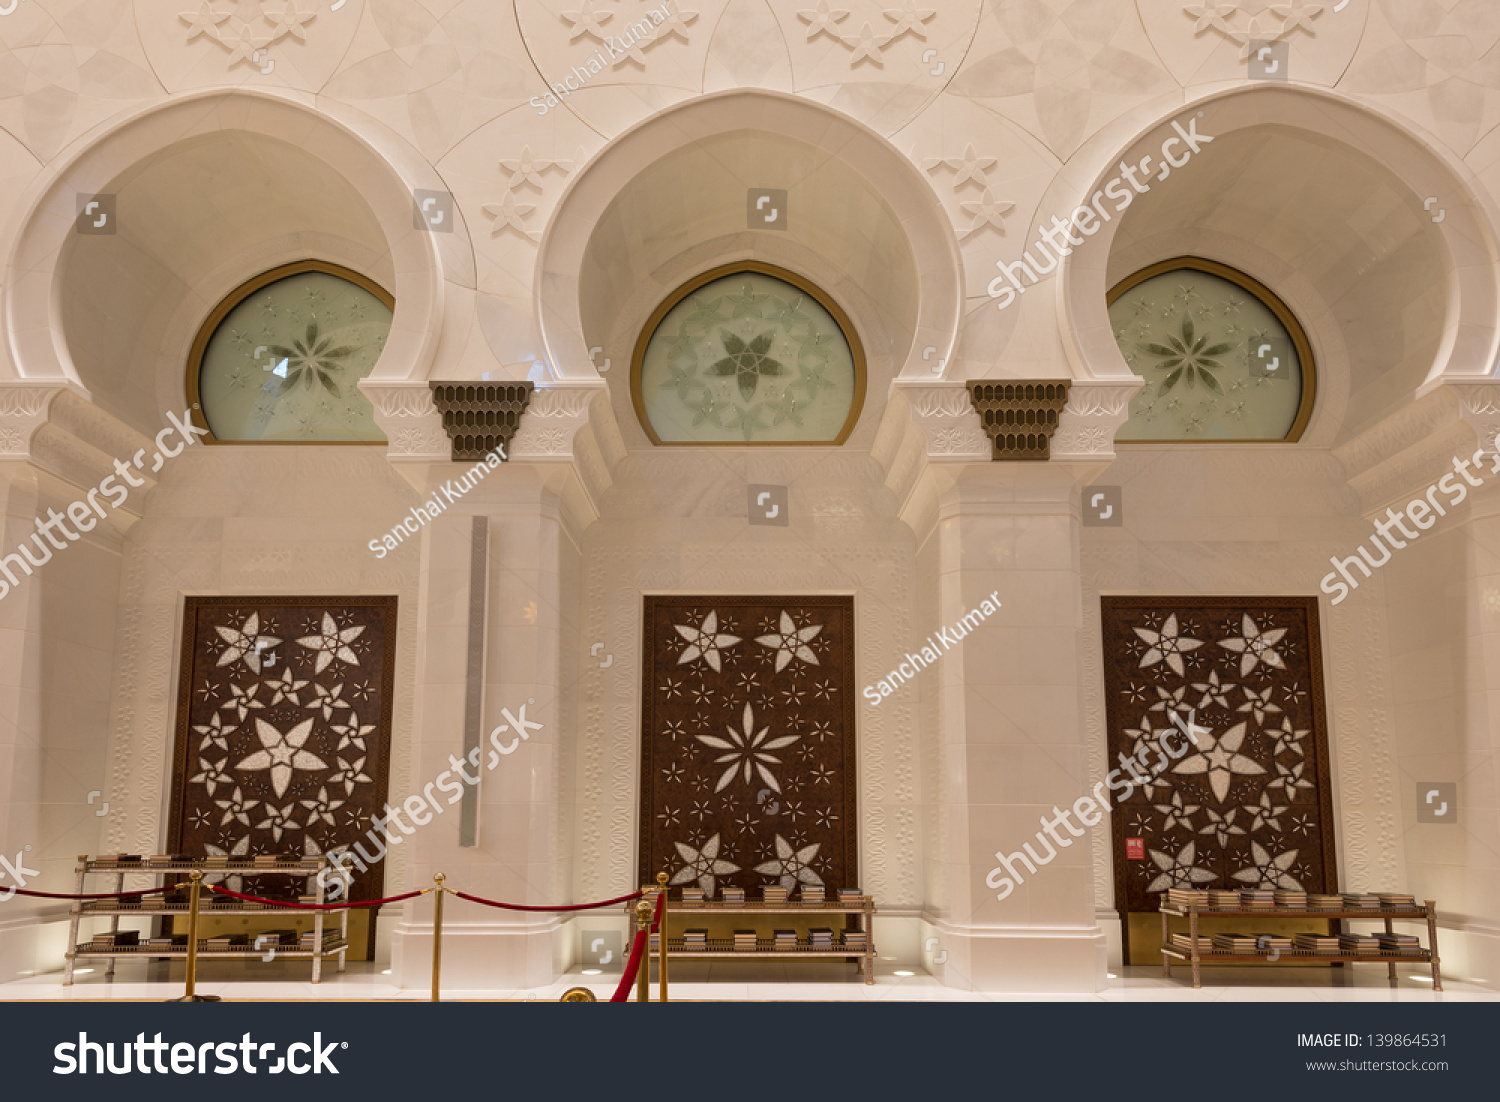 Interior Design Sheikh Zayed Grand Mosque Buildings Landmarks Stock Image 139864531